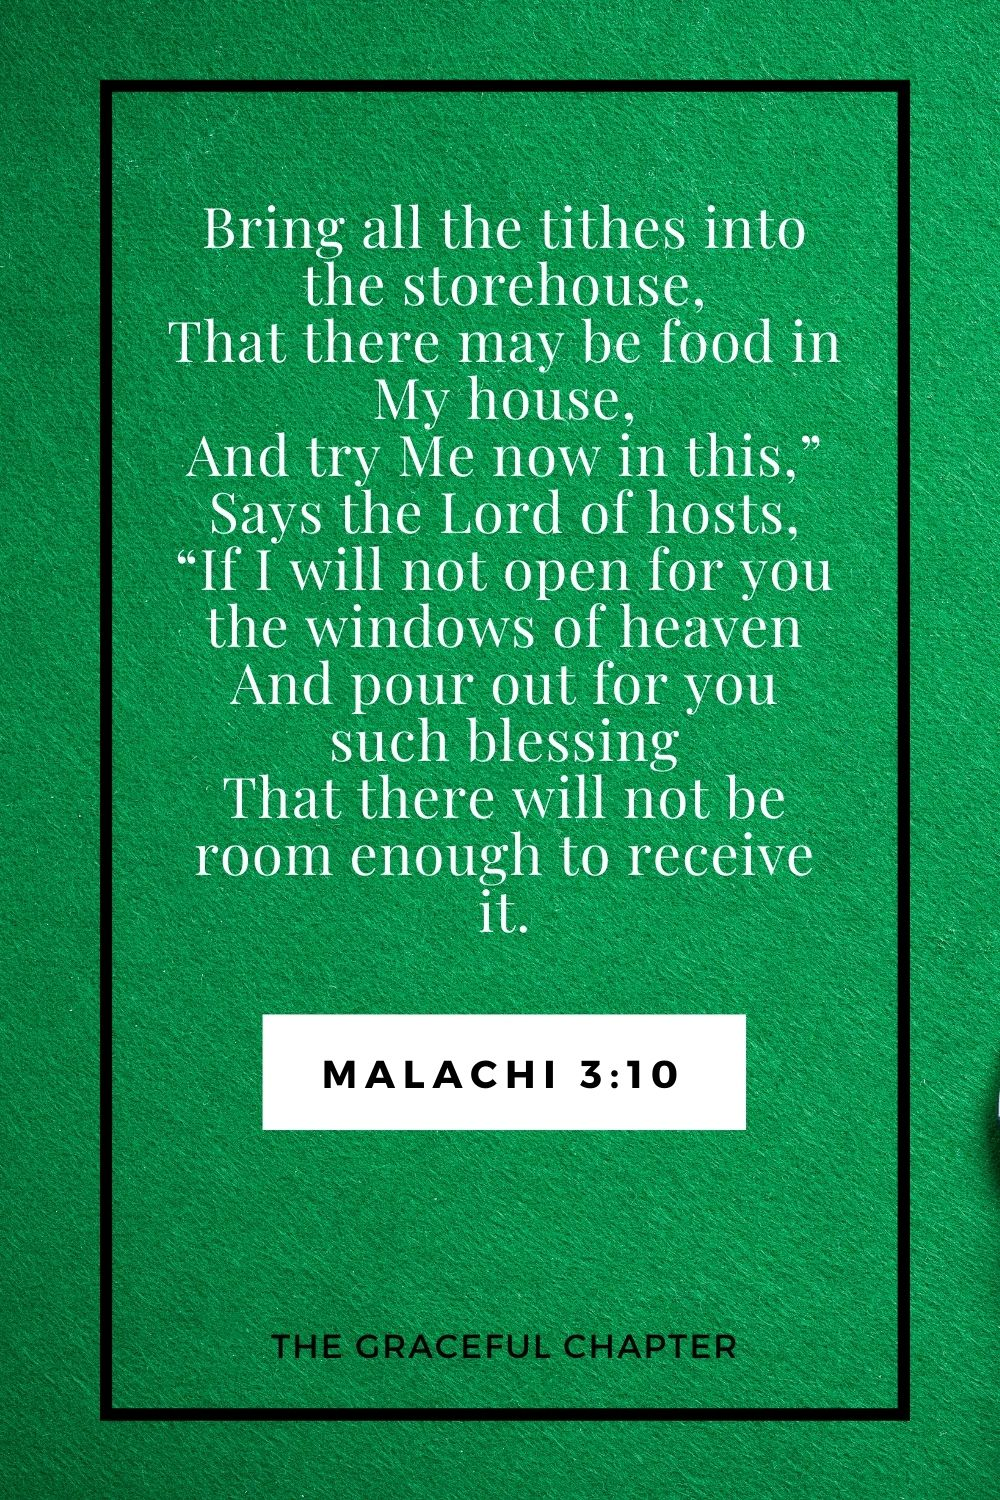 """Bring all the tithes into the storehouse, That there may be food in My house, And try Me now in this,"""" Says the Lord of hosts, """"If I will not open for you the windows of heaven And pour out for you such blessing That there will not be room enough to receive it. Malachi 3:10"""